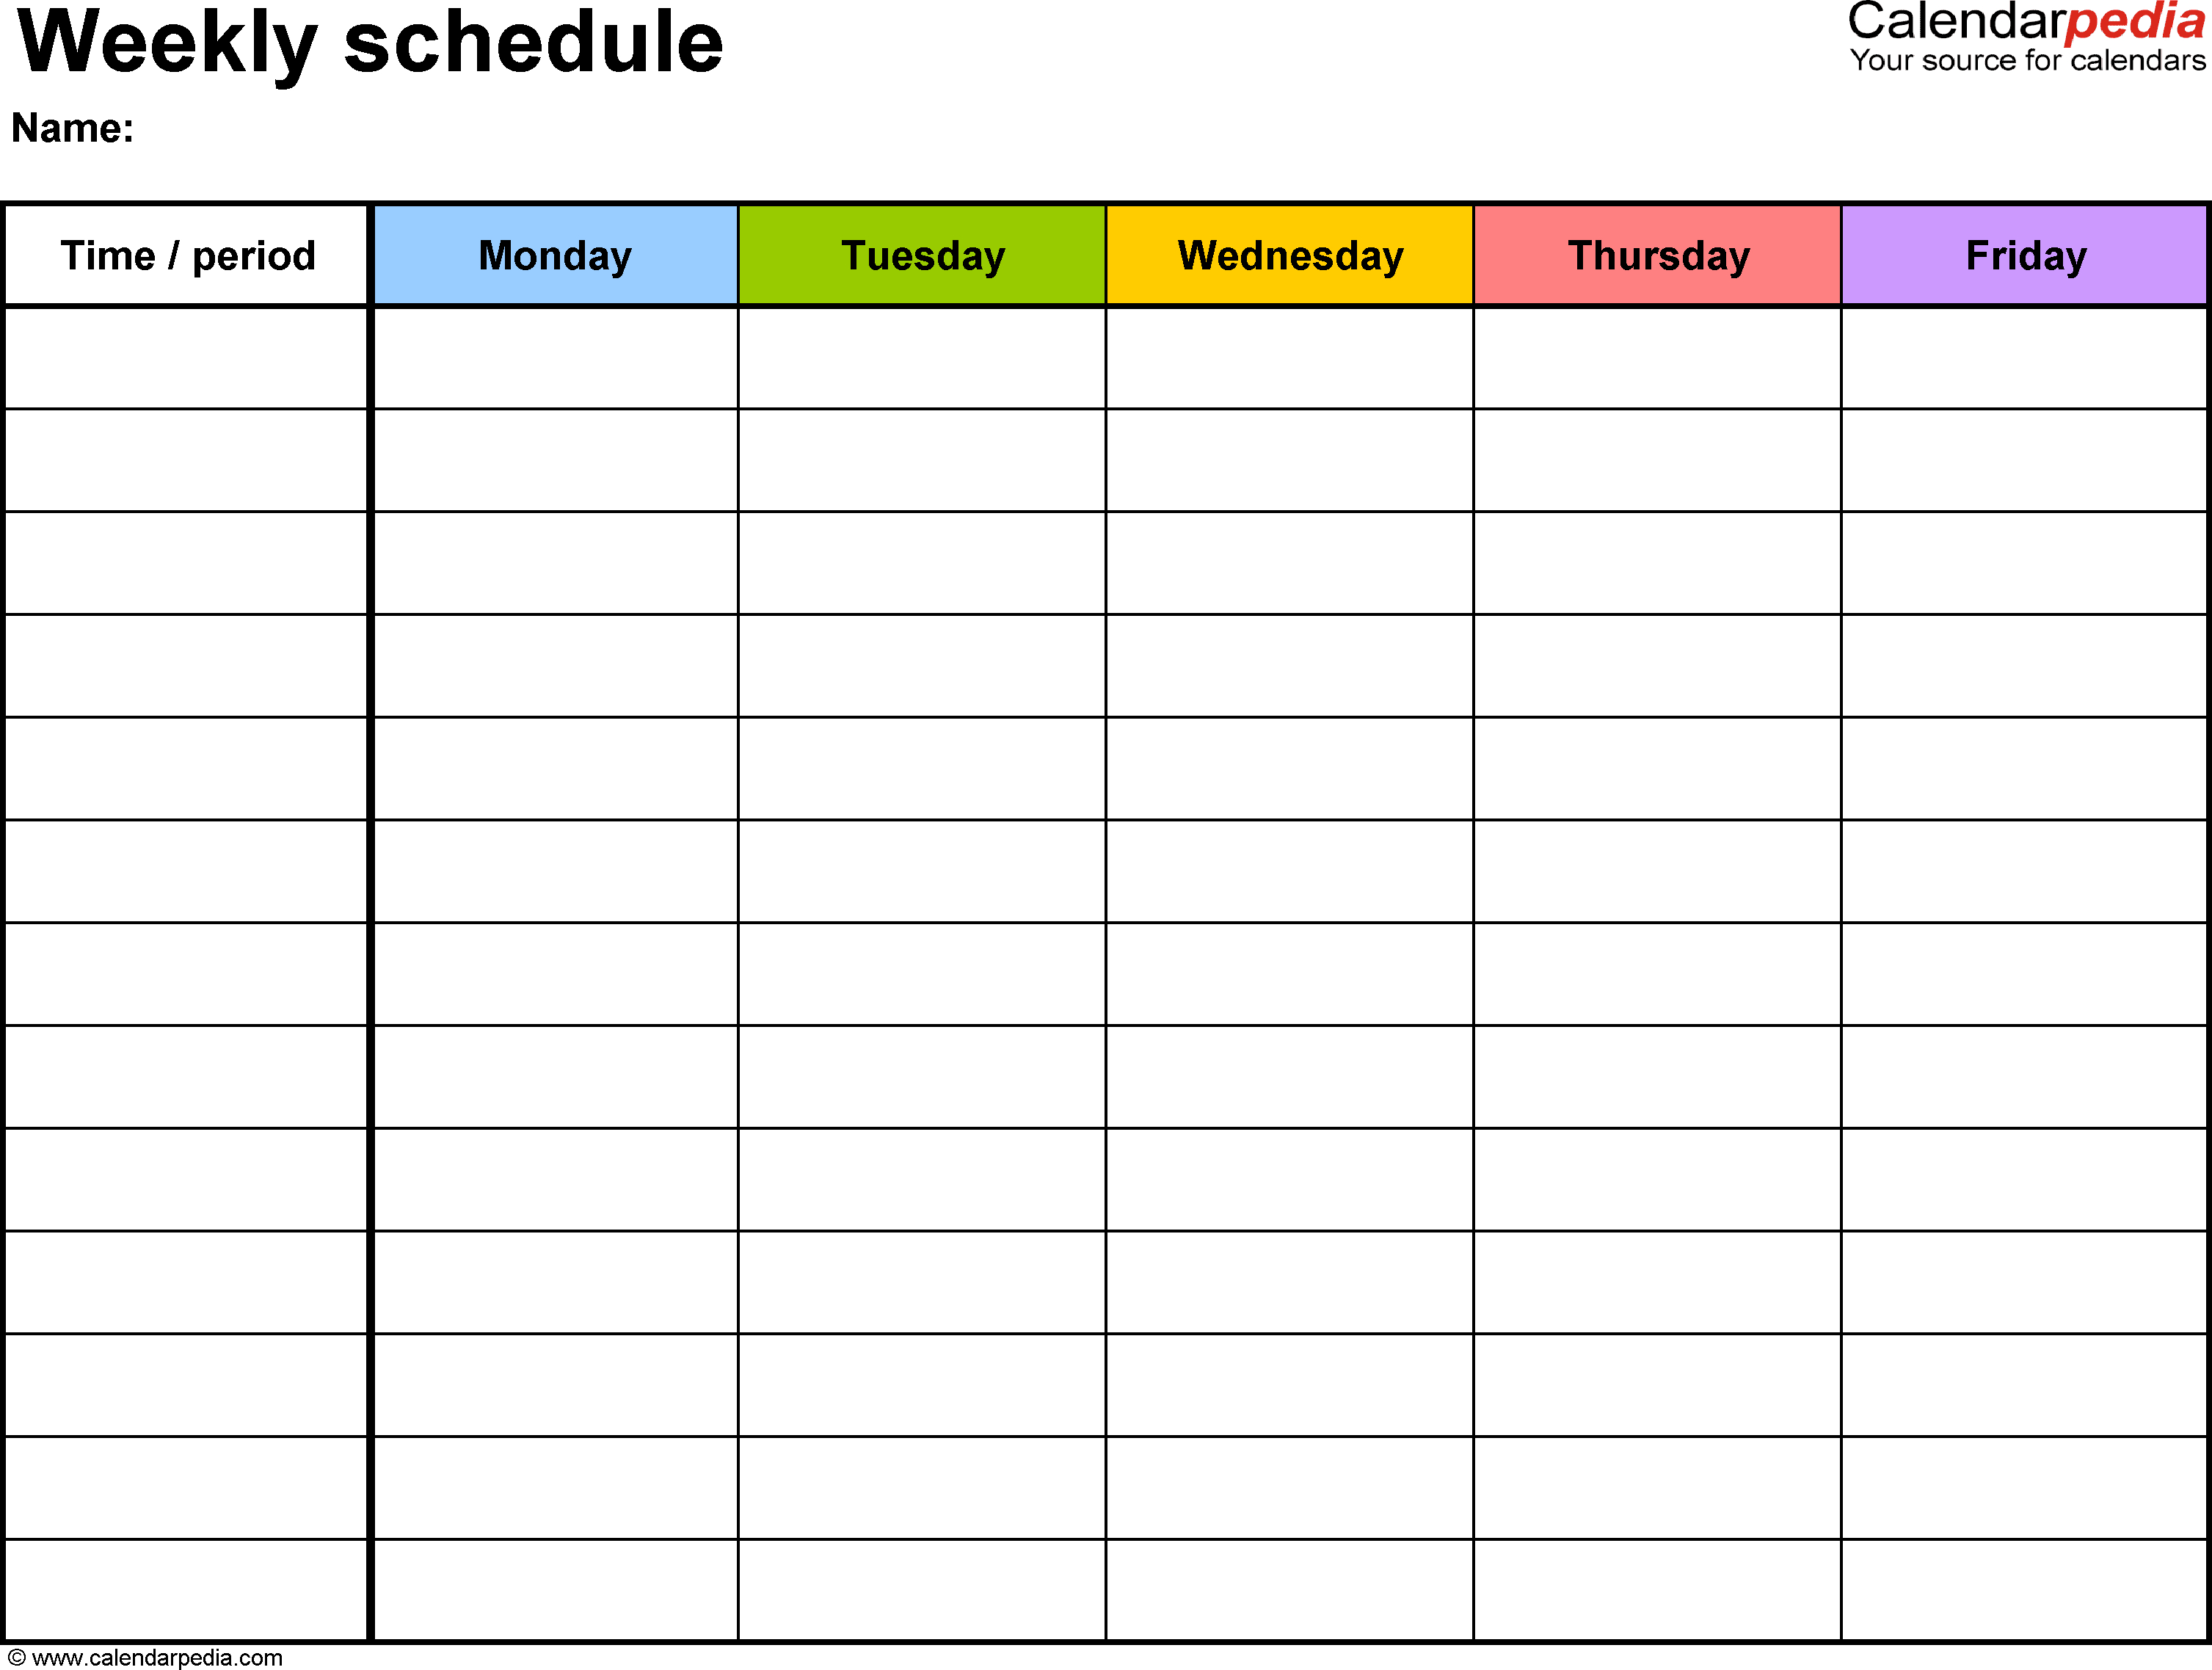 Free Weekly Schedule Templates For Excel - 18 Templates for One Week Calendar Template Printable